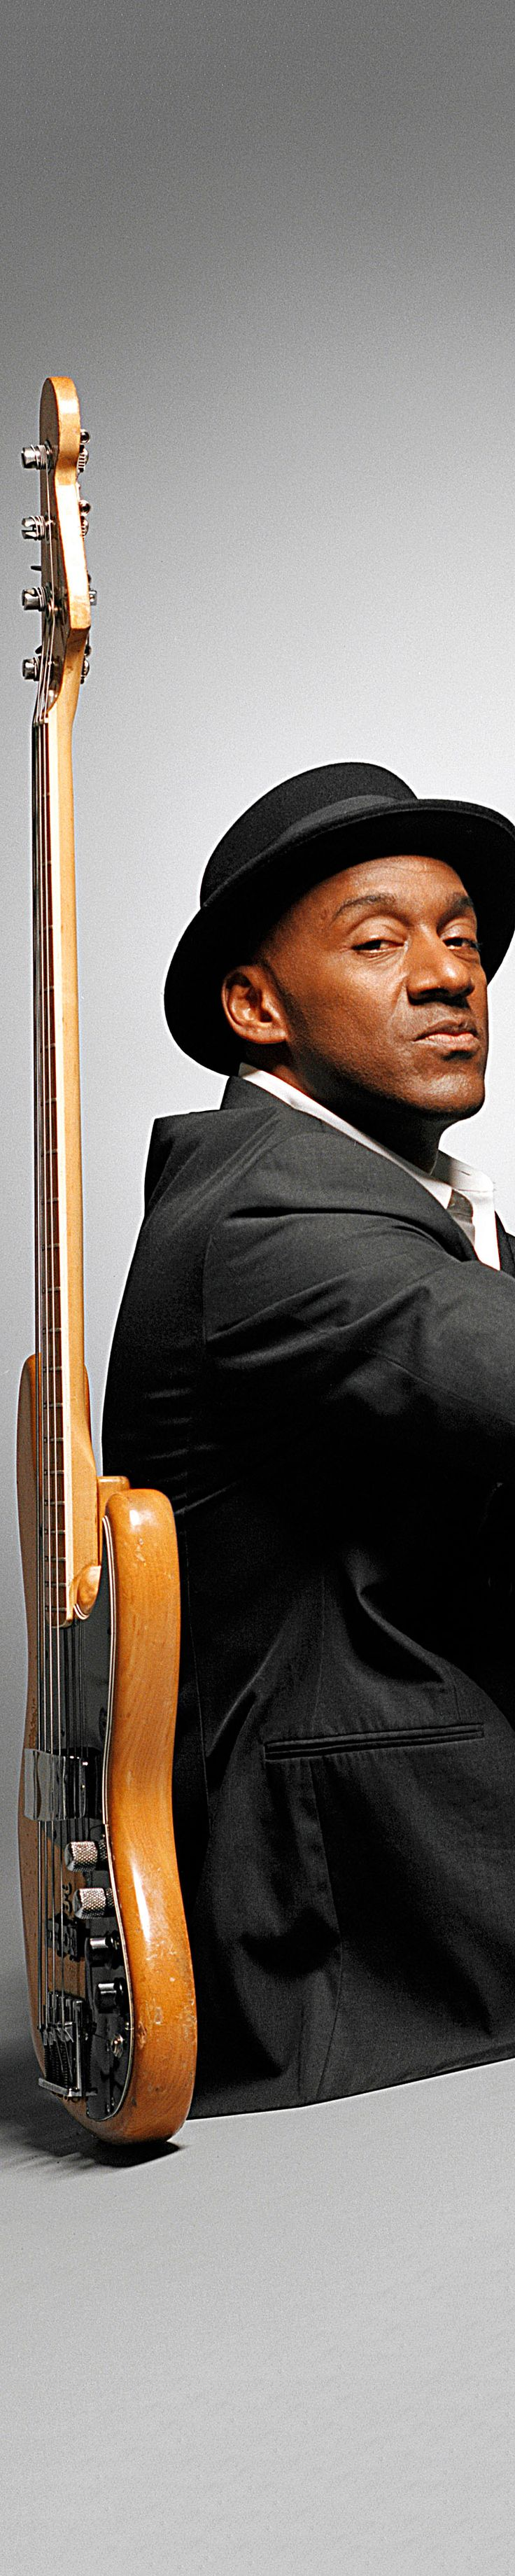 Marcus Miller ~ composer, producer, and multi instrumentalist. Best known for bass guiatrist...played with Miles Davis, Herbie Hancock, Luther Vandross + David Sanborn from Jamaica, Queens, New York